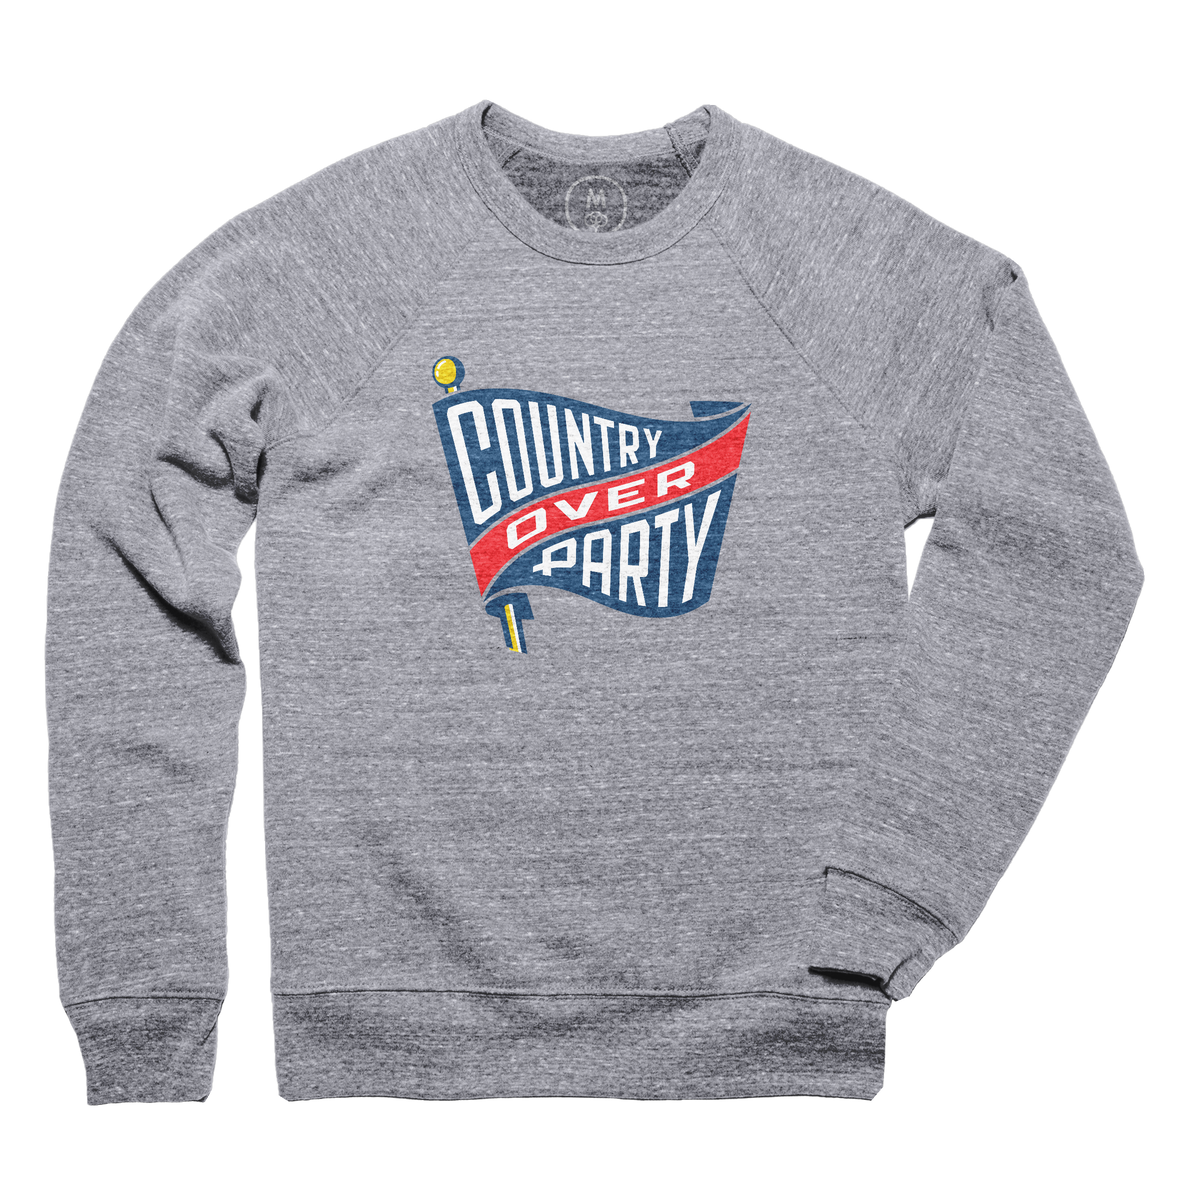 "046e7b0d897 ""Country Over Party"" graphic tee and pullover crewneck by Matthew Dowd."